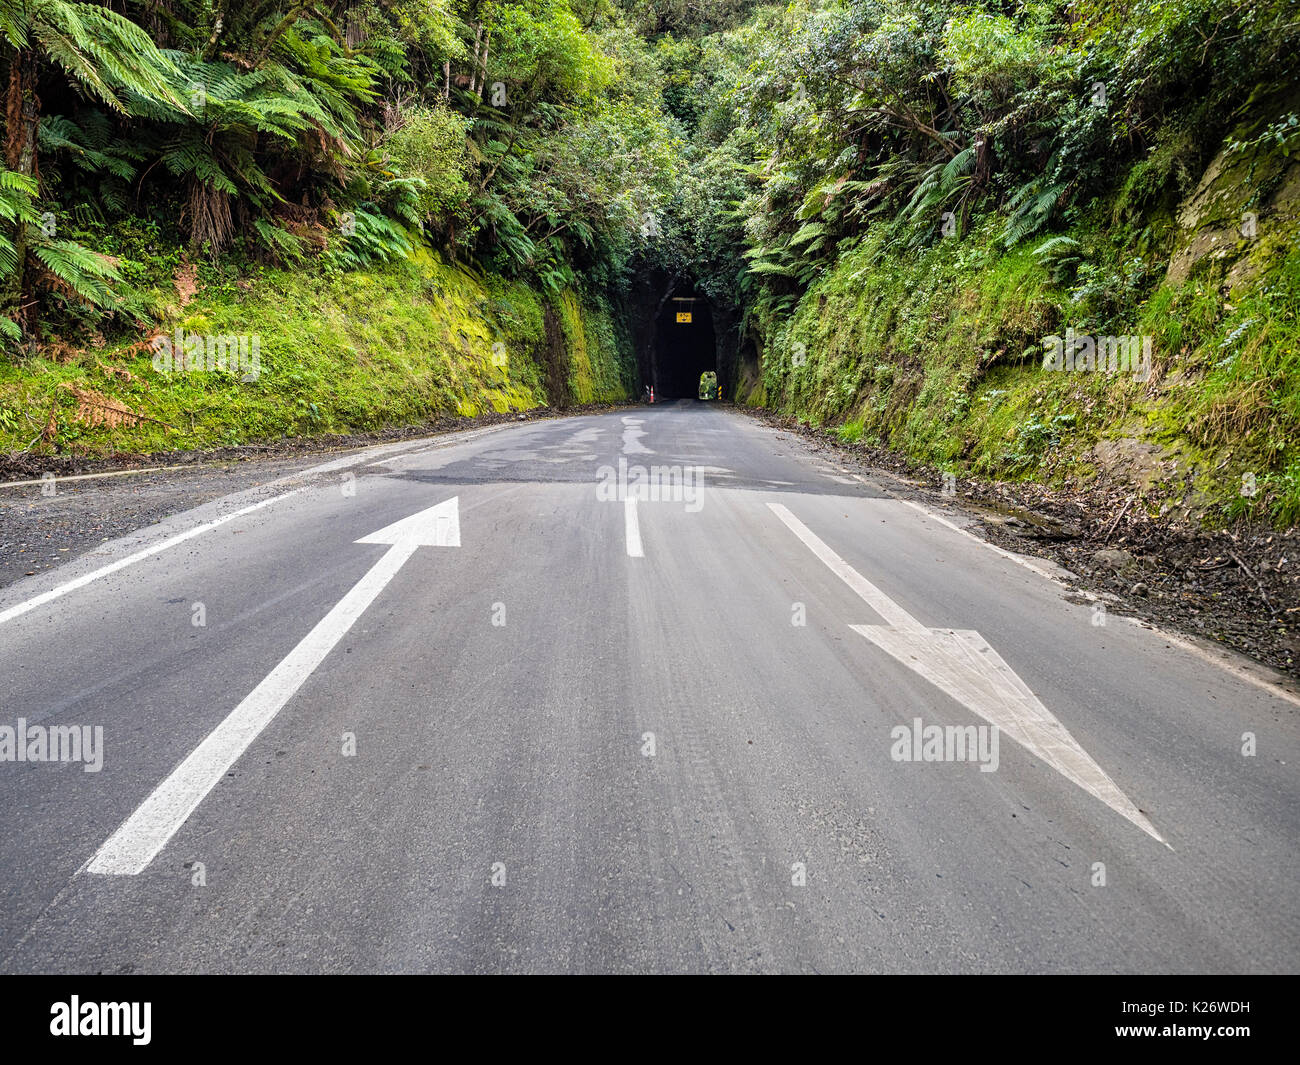 Tunnel, Forgotten World Highway, Taranaki Region, North Island, New Zealand - Stock Image